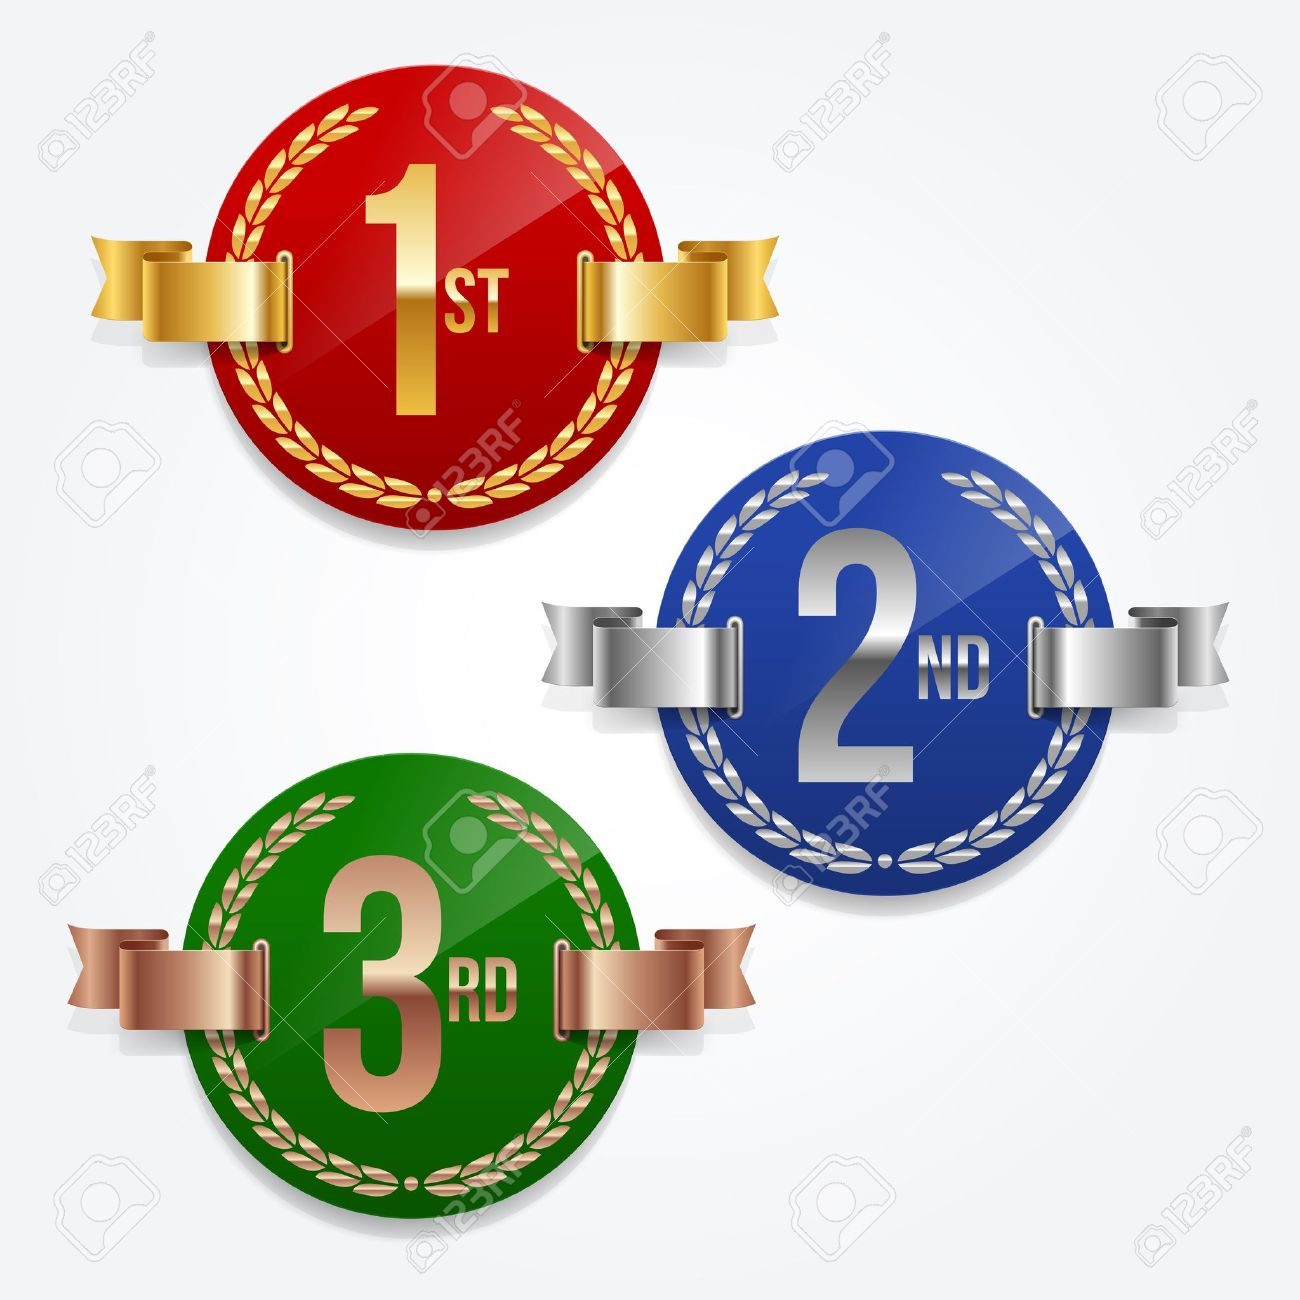 1st 2nd 3rd place clipart 5 » Clipart Station.